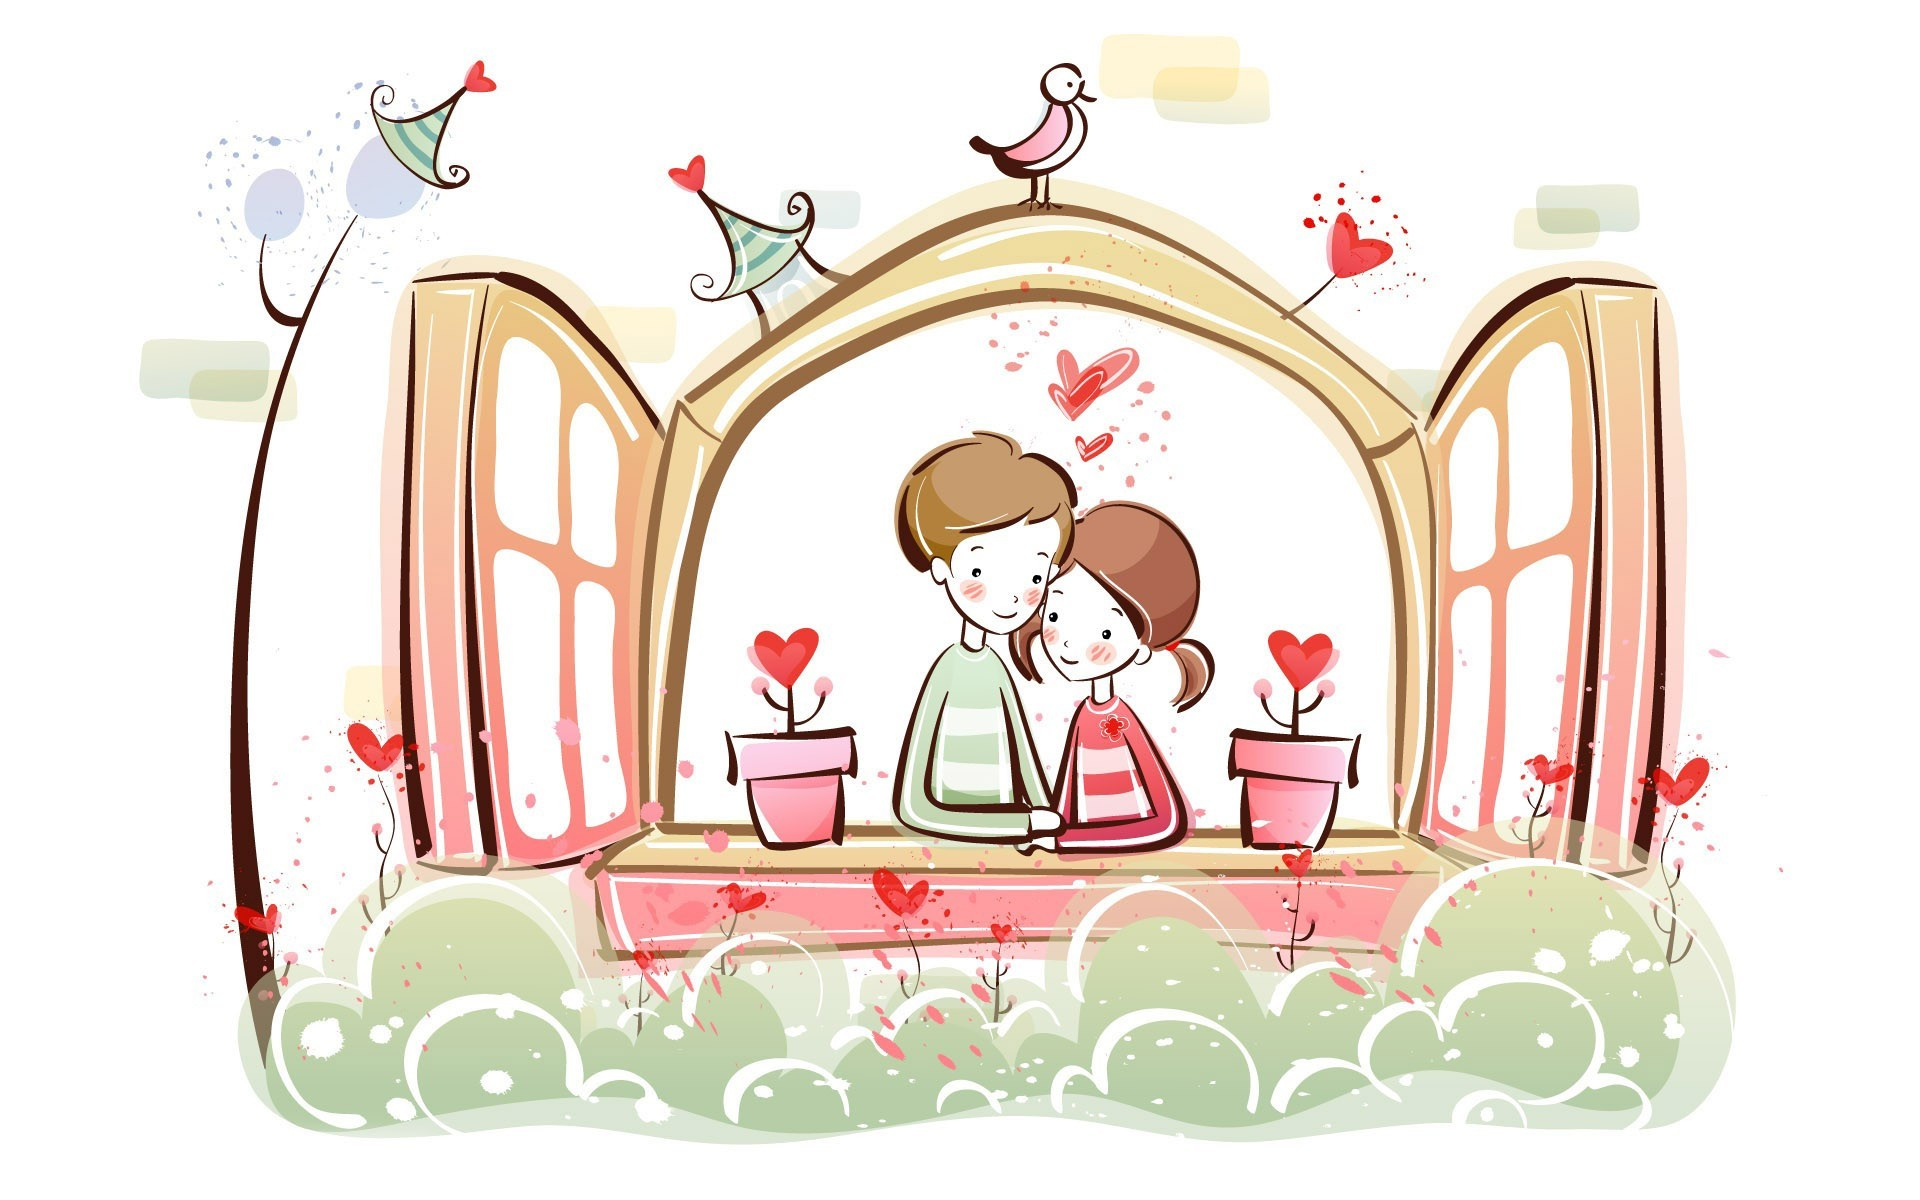 cartoon Type Love Wallpaper : cartoon Love Wallpaper - Wallpaper, High Definition, High Quality, Widescreen